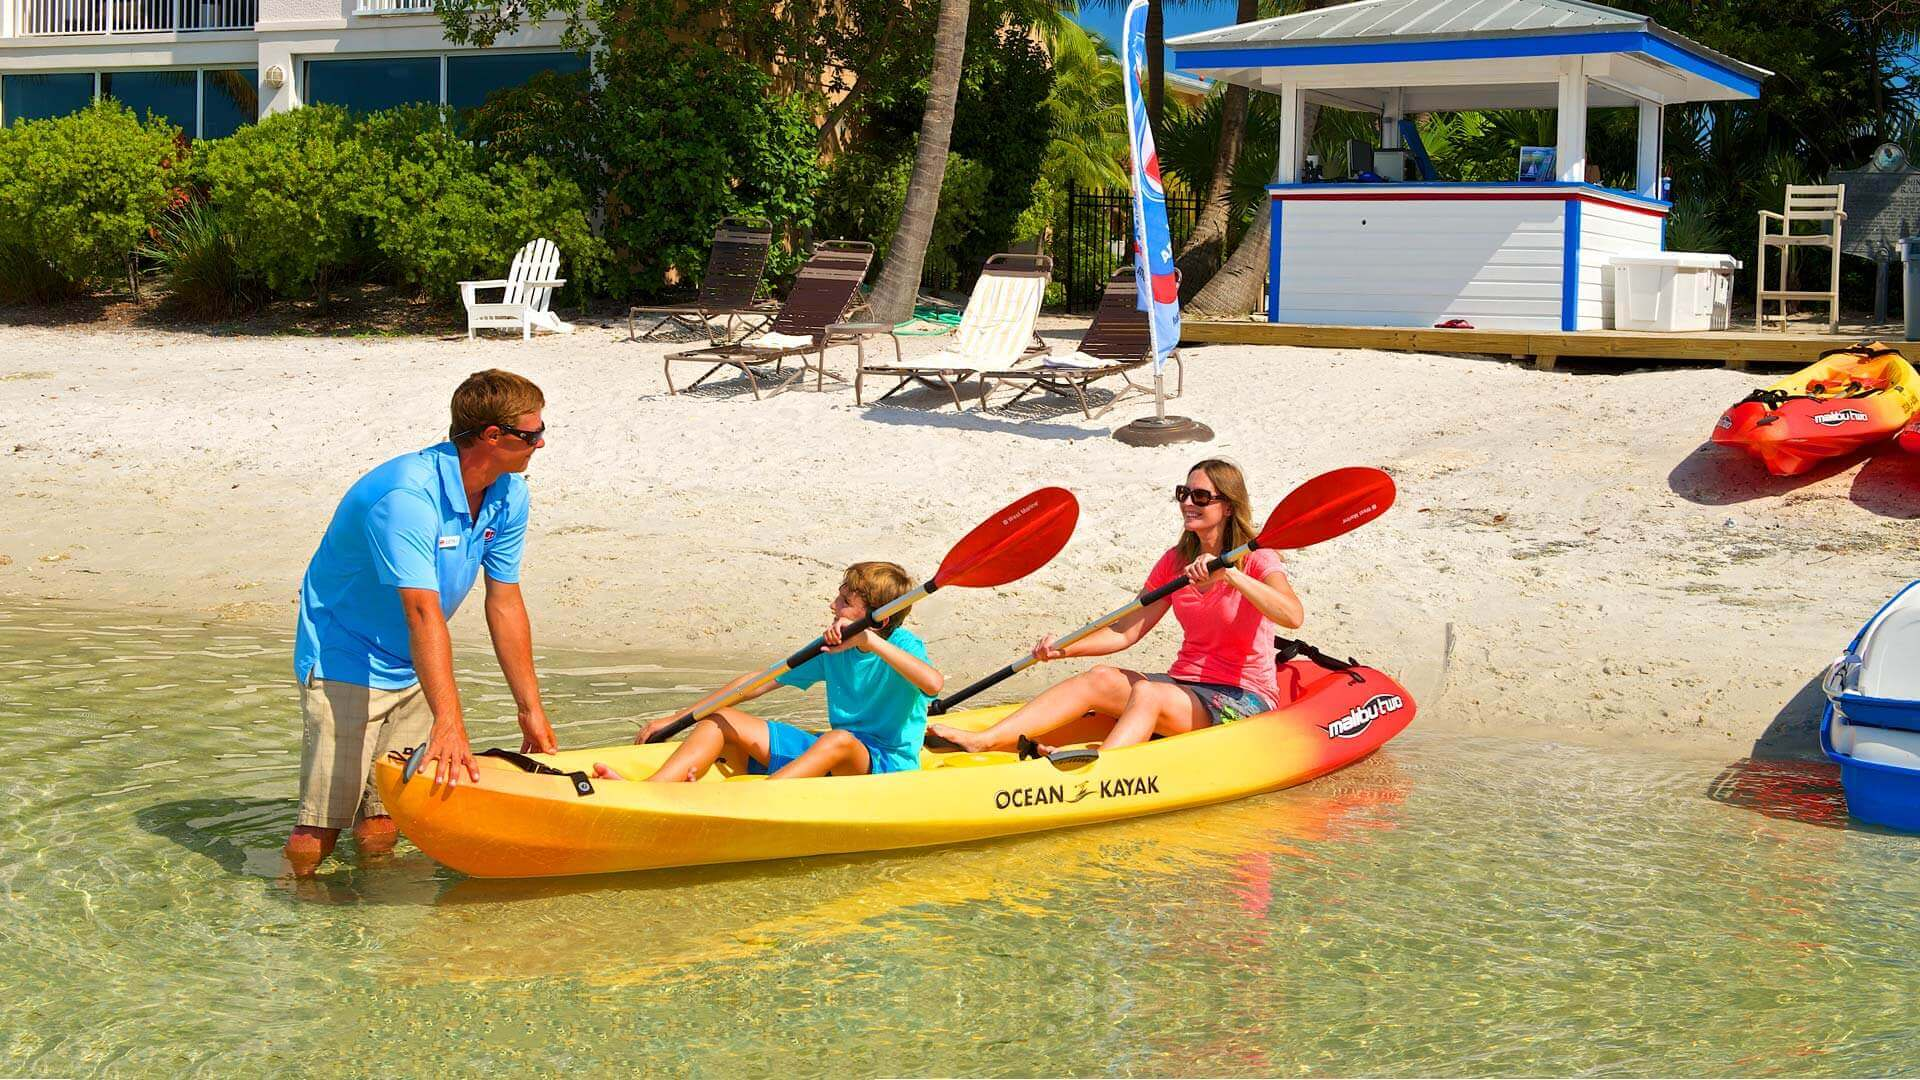 Family renting a kayak in Key West